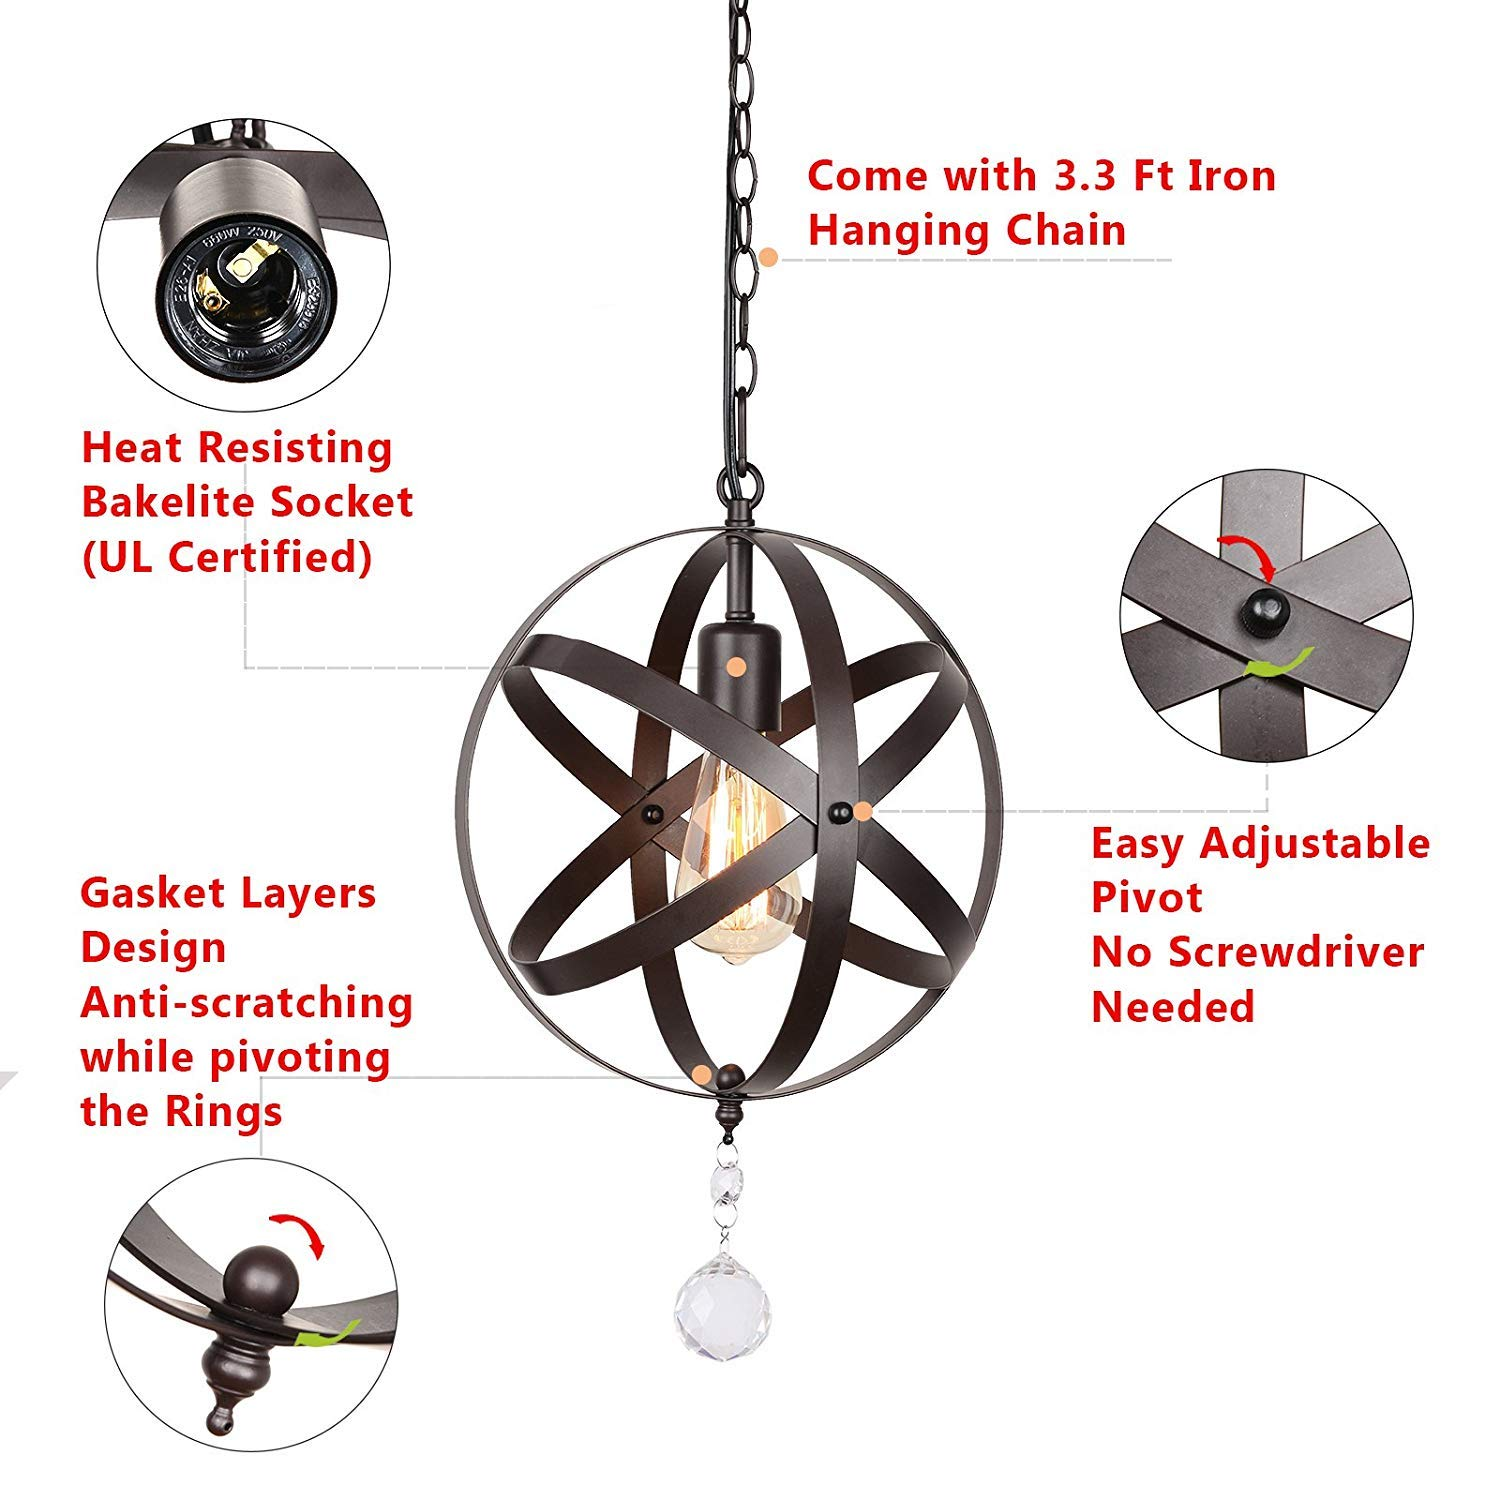 Creatgeek Industrial Plug in Pendant Light,16.4 Ft Hanging Cord and On Off Dimmable Switch Mini Globe Chandelier,Vintage Oil Rubbed Bronze Ceiling Light Fixture for Kitchen Dining Room Bedroom-1 Set